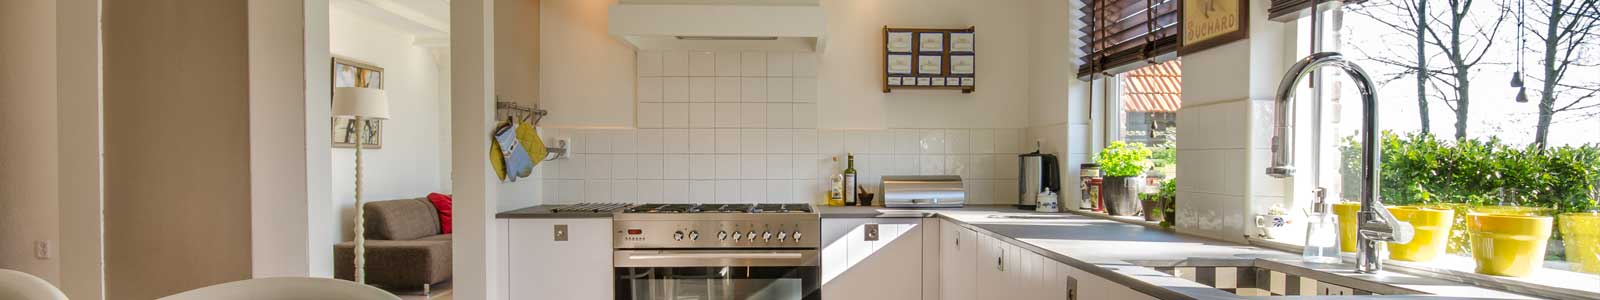 Clean and Sanitized Kitchen